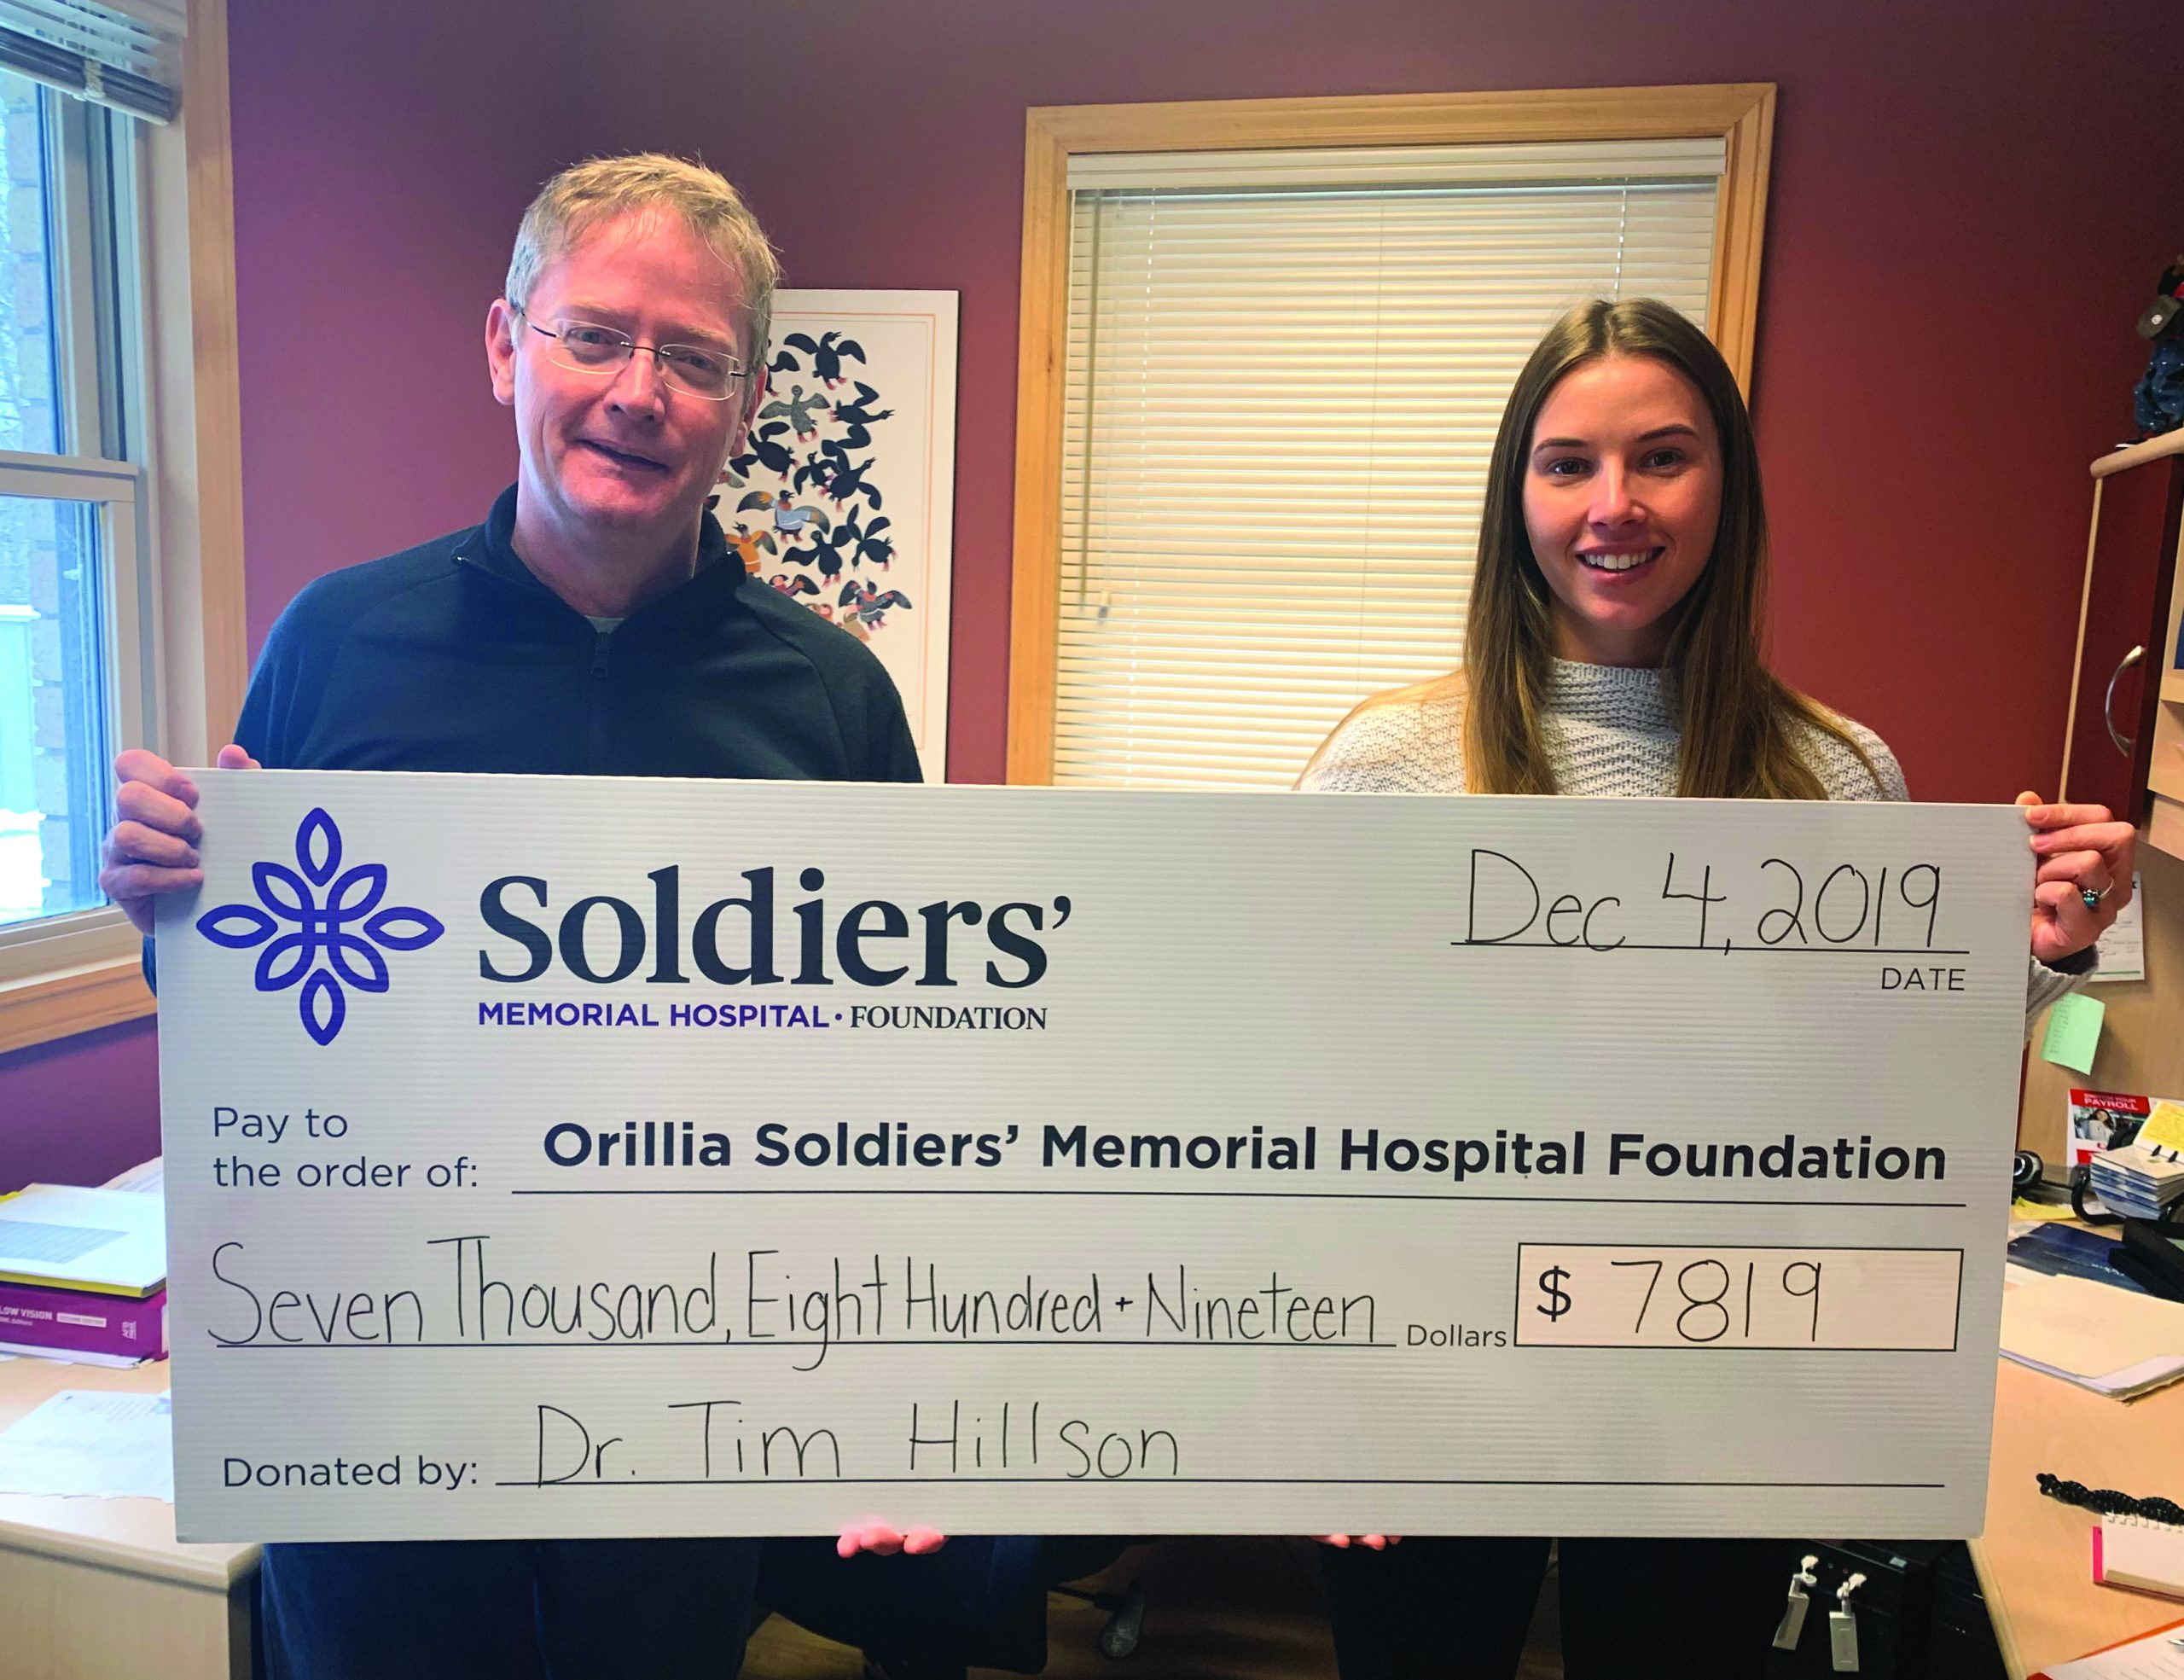 Dr. Tim Hillson (left) presents a cheque for $7,819 to Brittany Wilson, OSMH Foundation Development Officer, the proceeds of Cure for the Common Comedy show that he organized this past October.